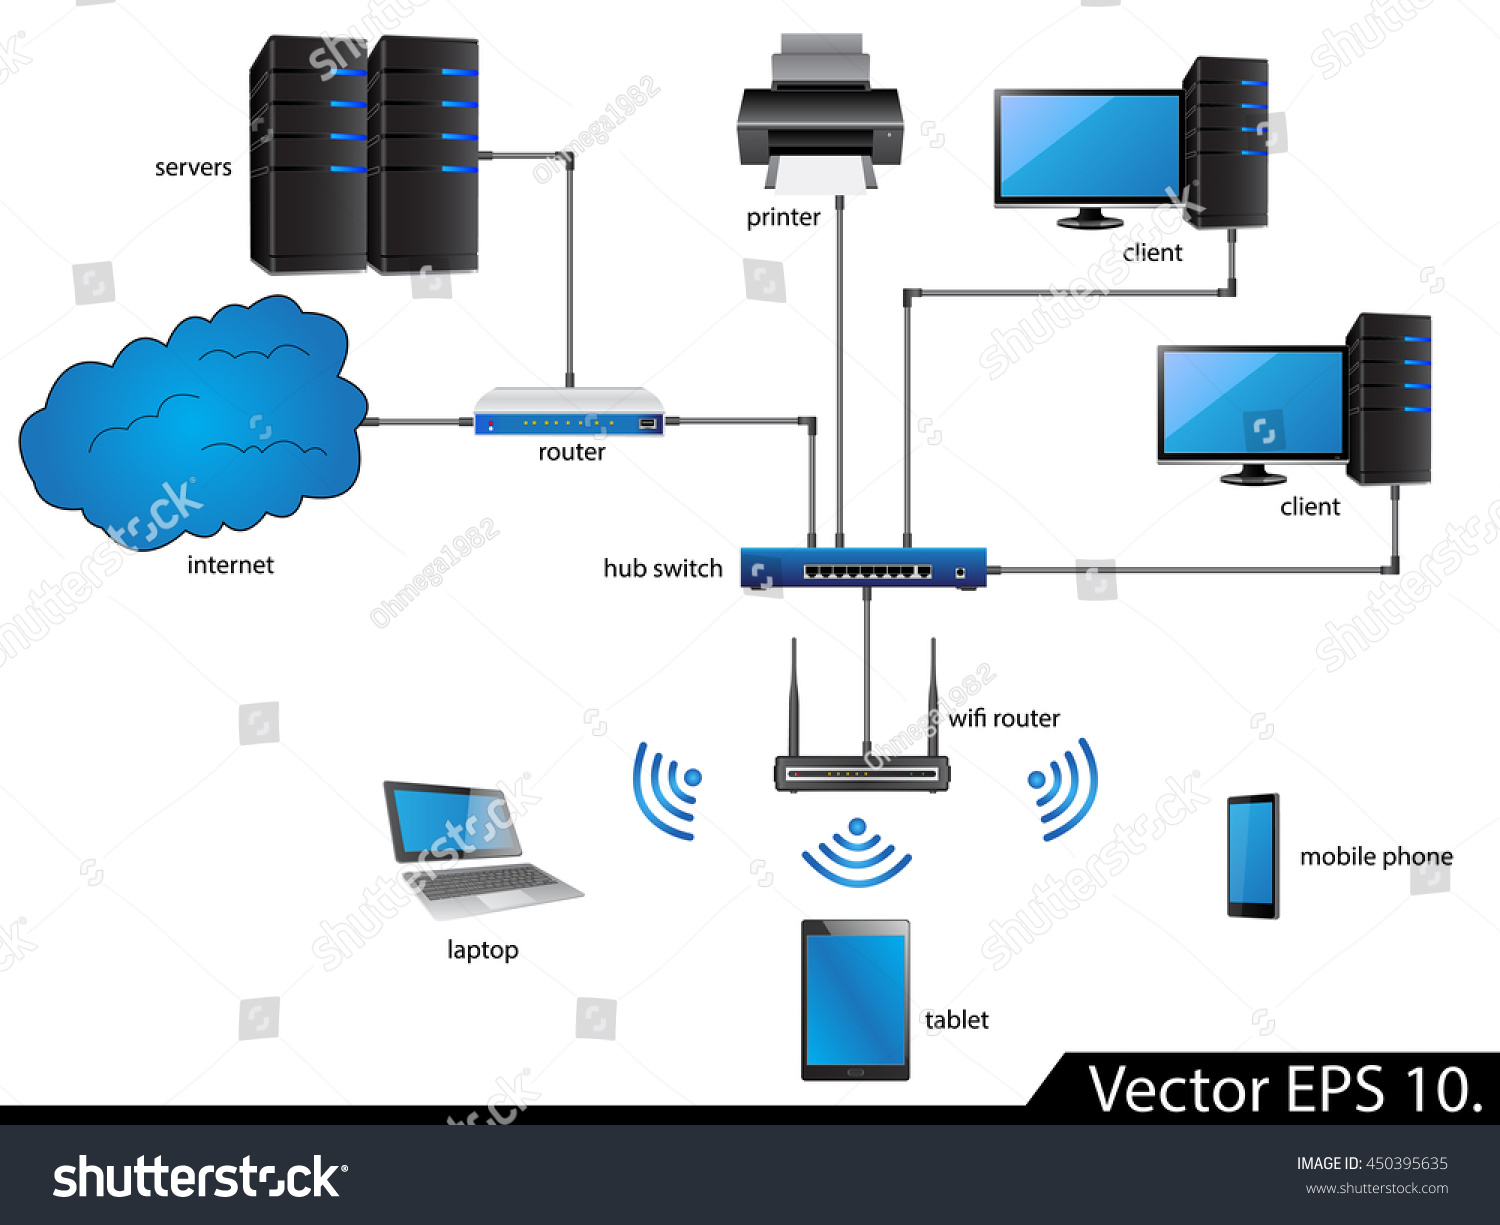 lan network diagram icons vector illustrator eps 10 for business and technology concept